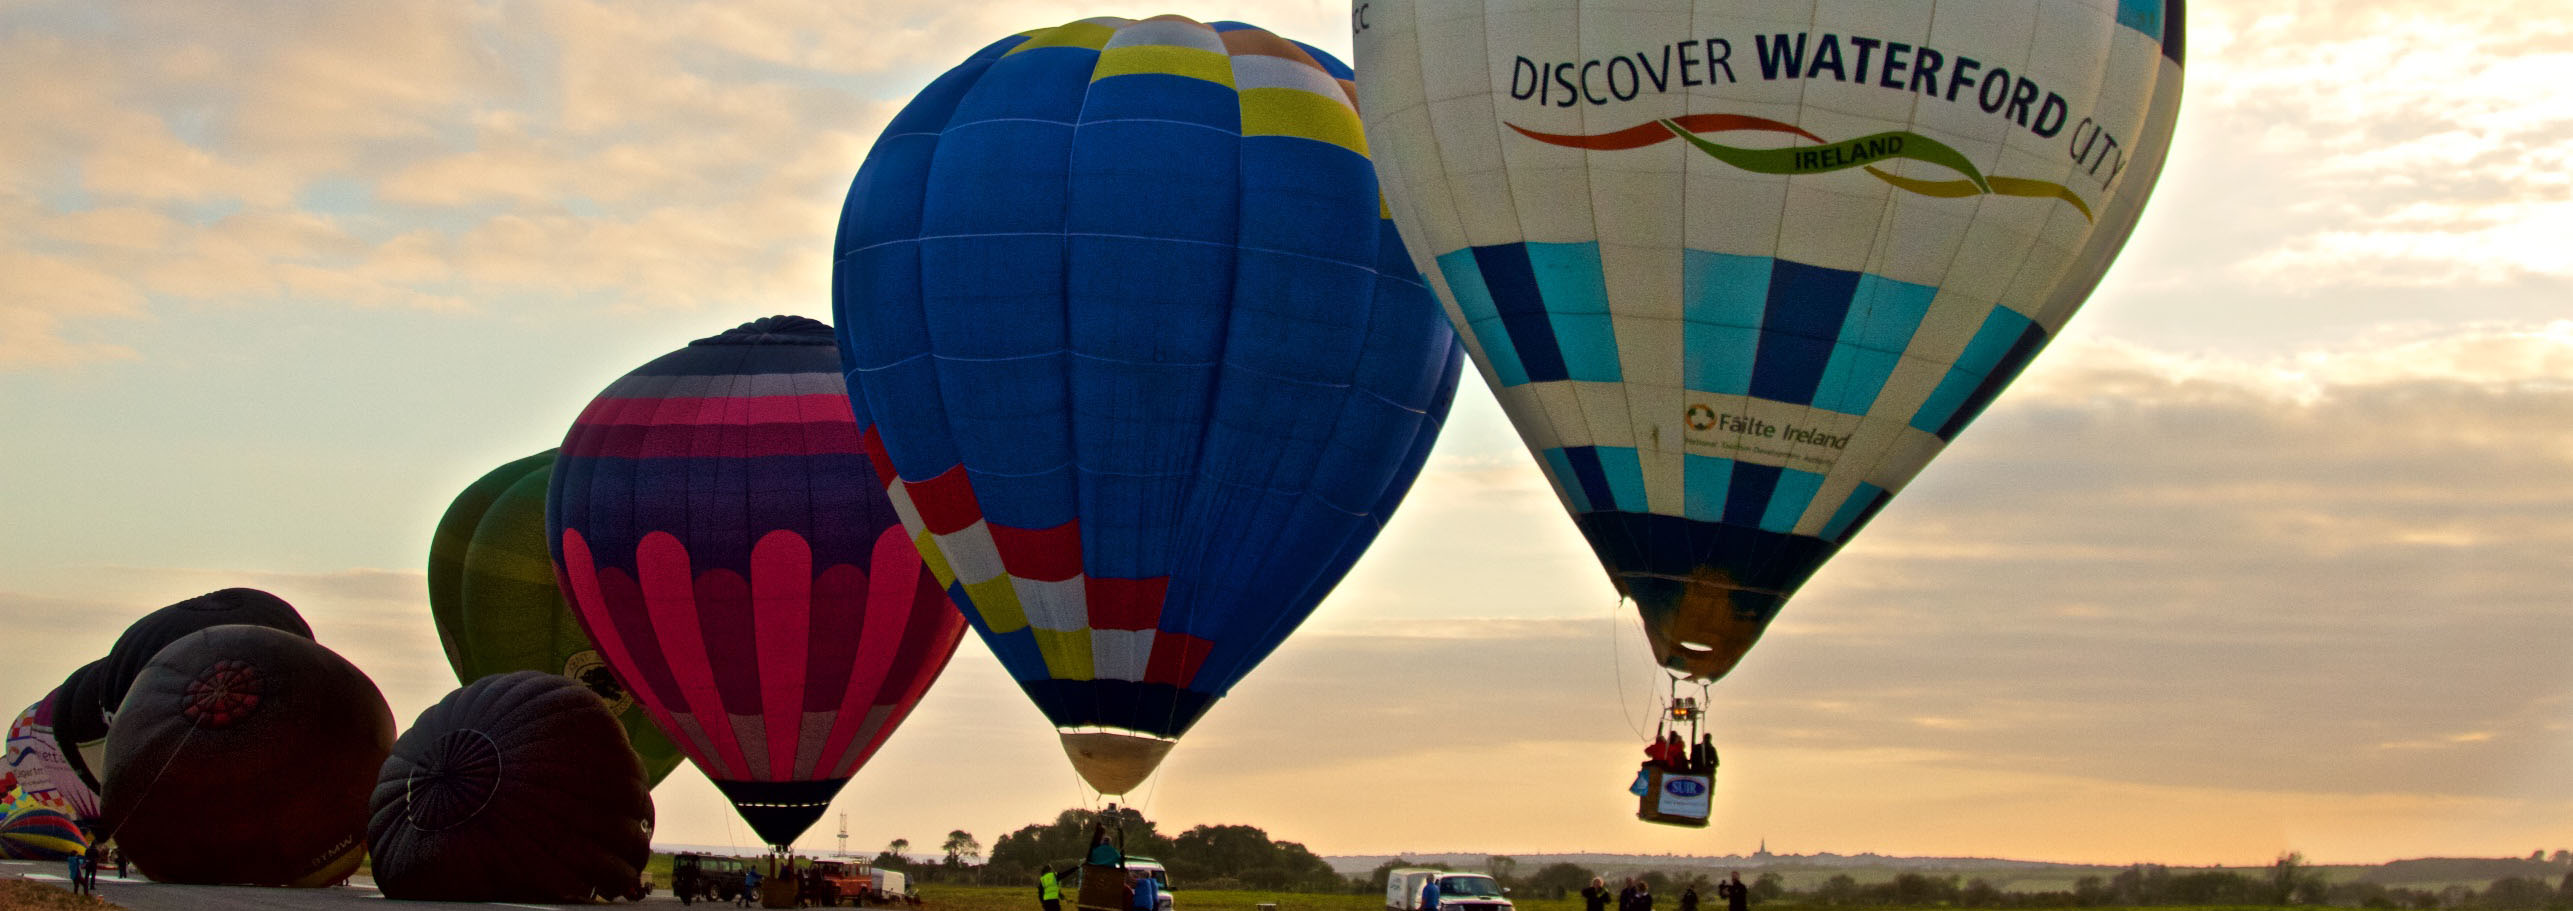 Irish Balloon Championships Discover Waterford City Balloon